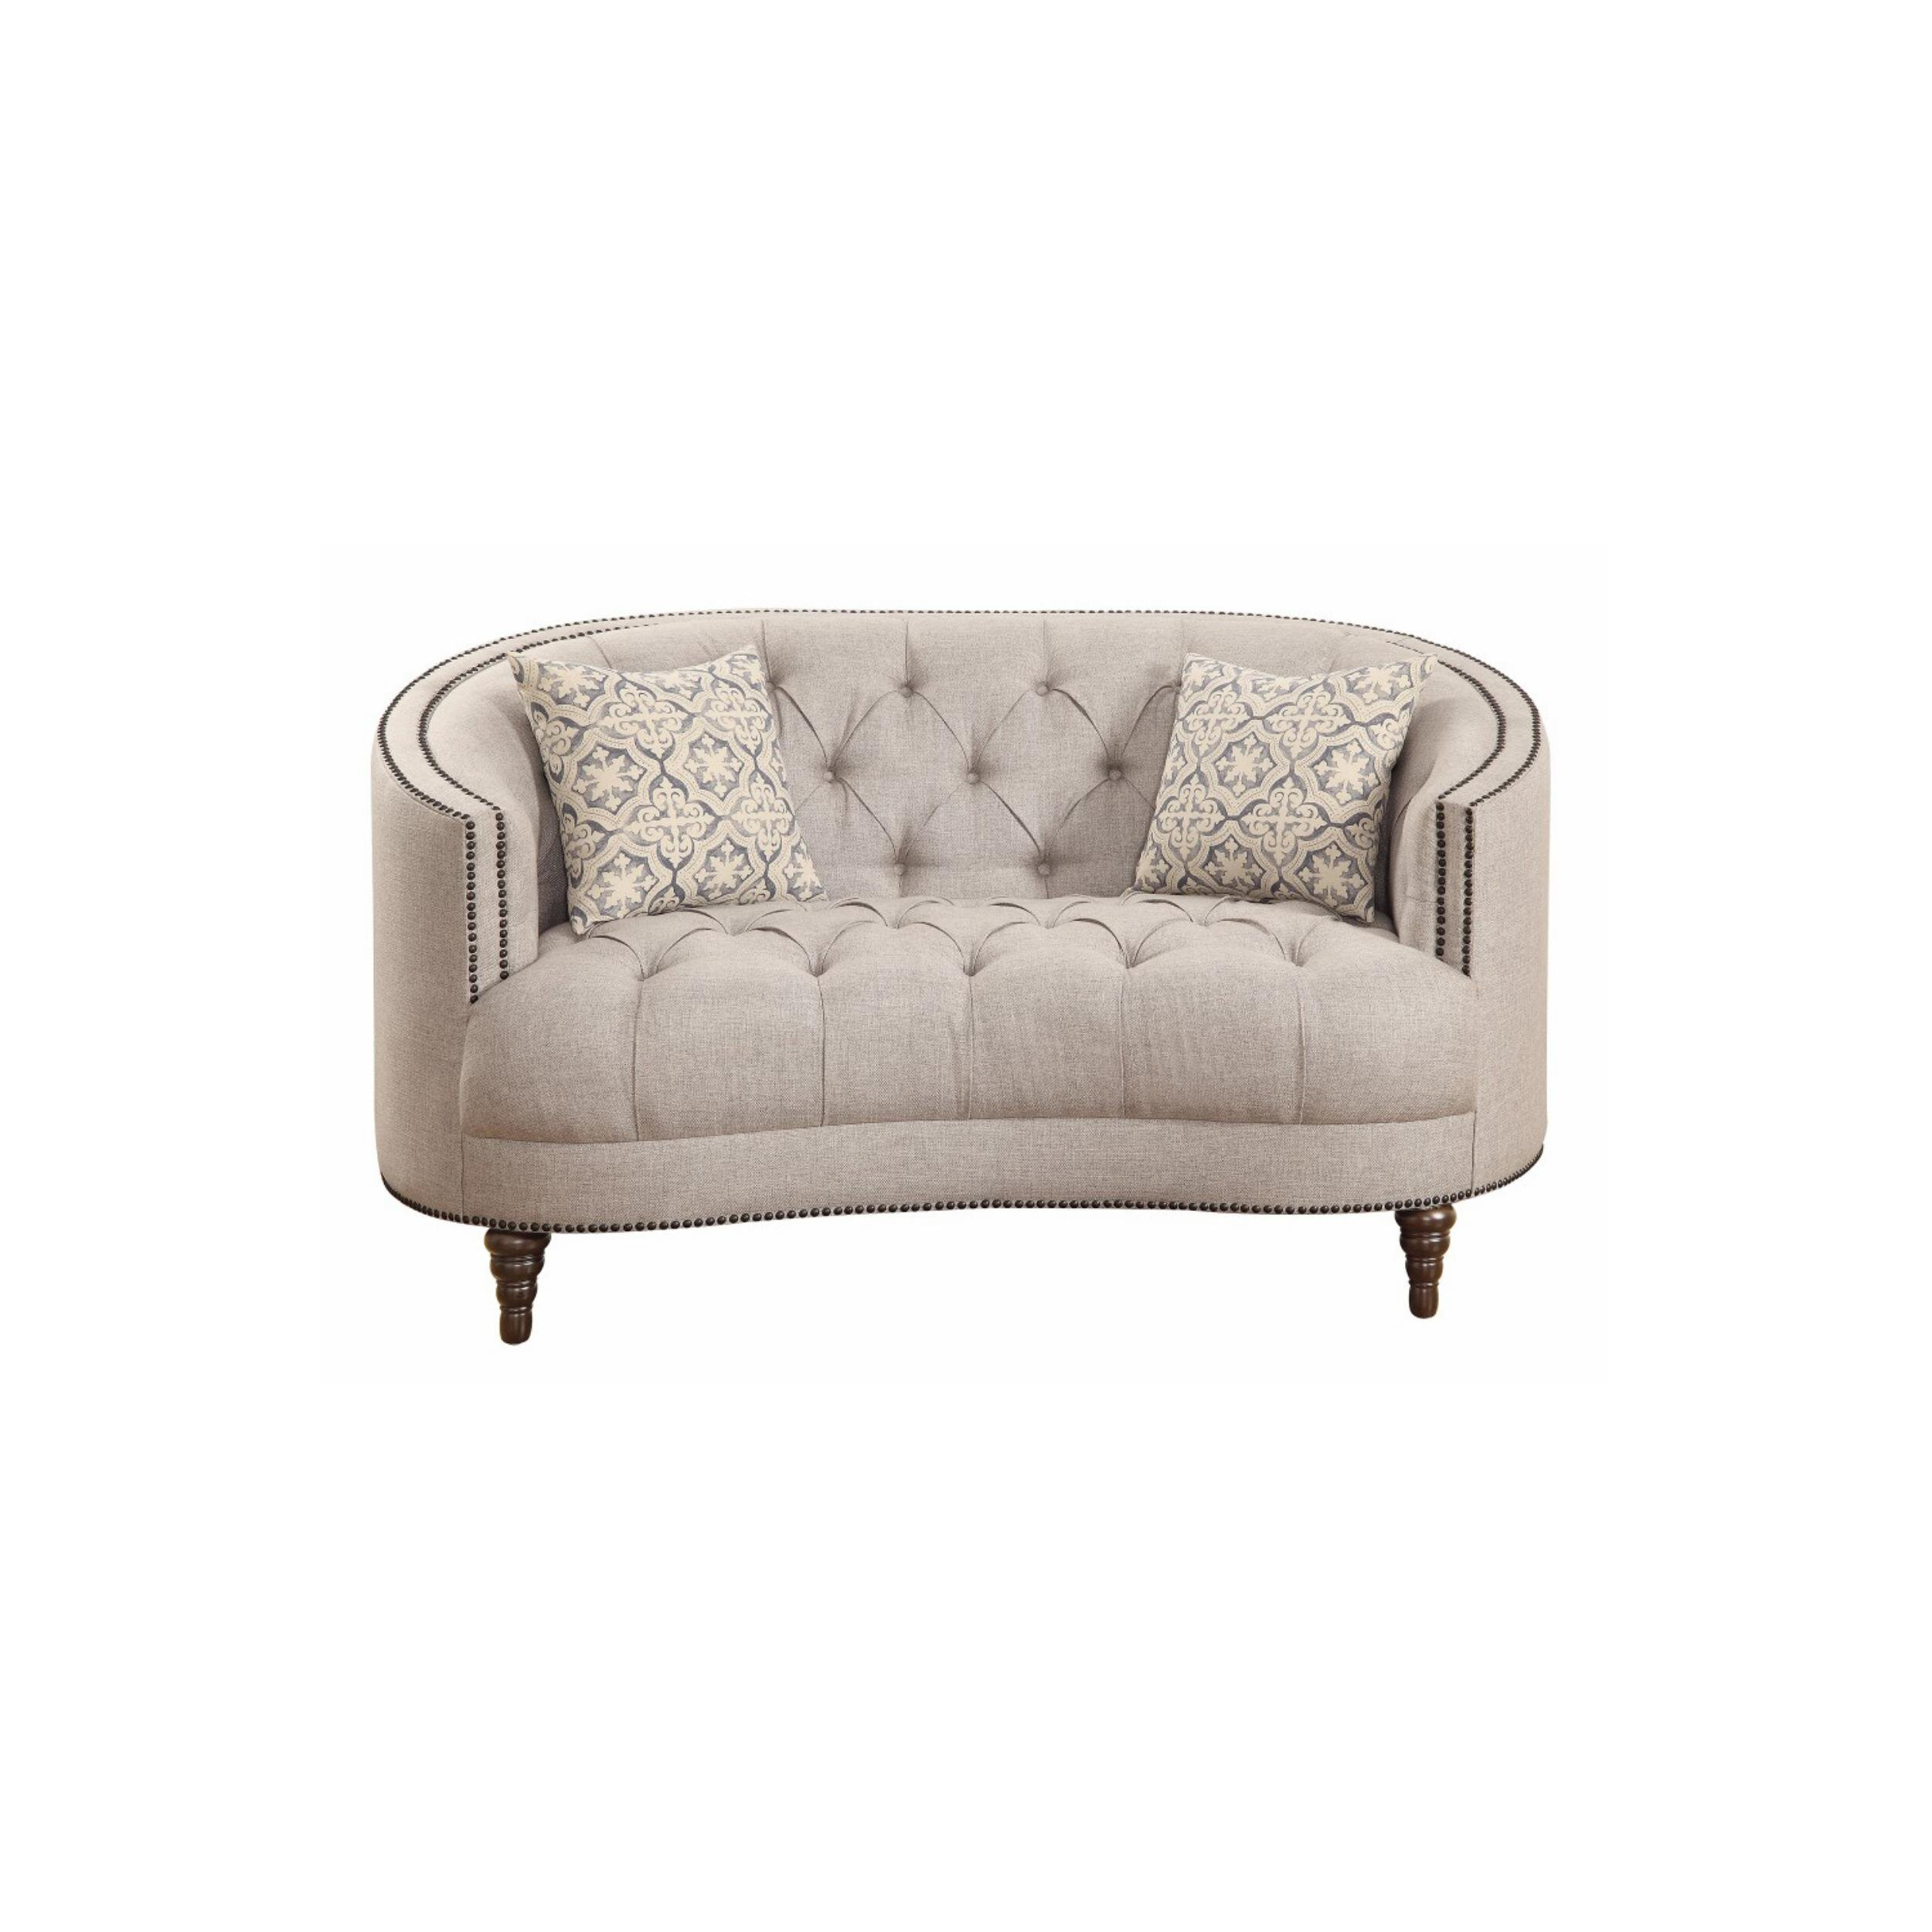 Curved Tuxedo Arm Sofas You Ll Love In 2021 Wayfair